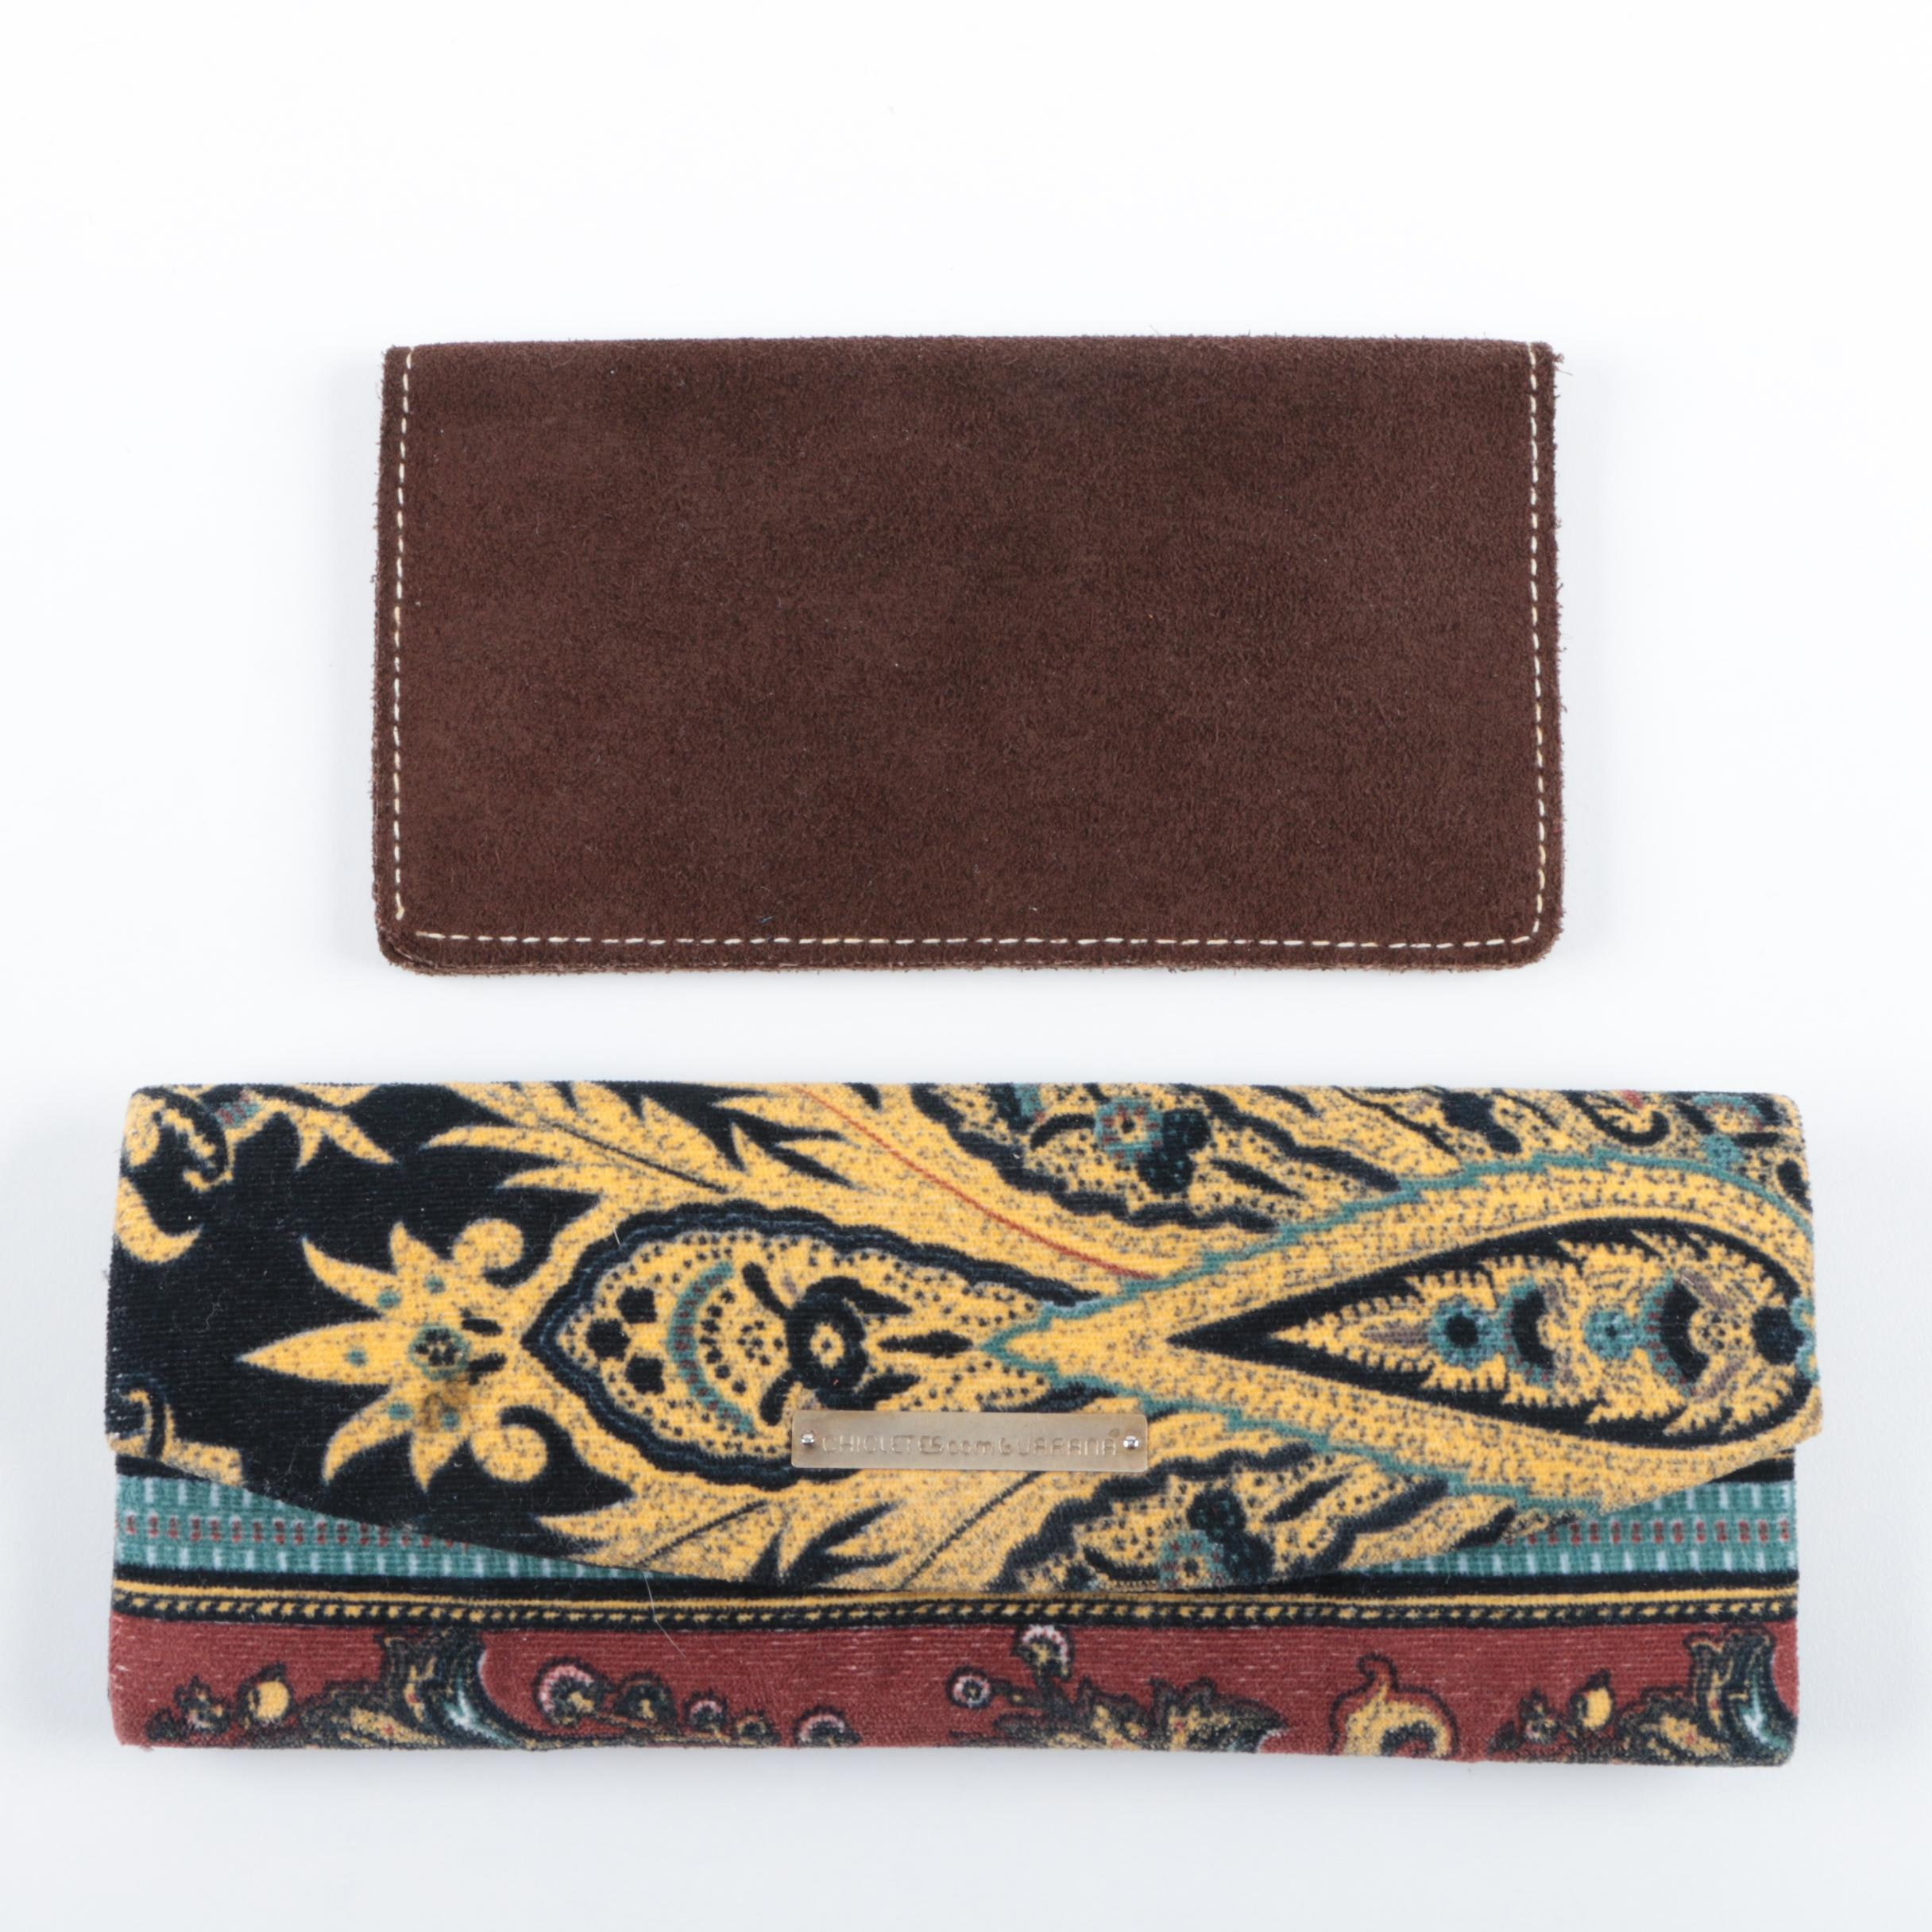 Chicletes com Guarana's Clutch with Brown Suede Checkbook Holder